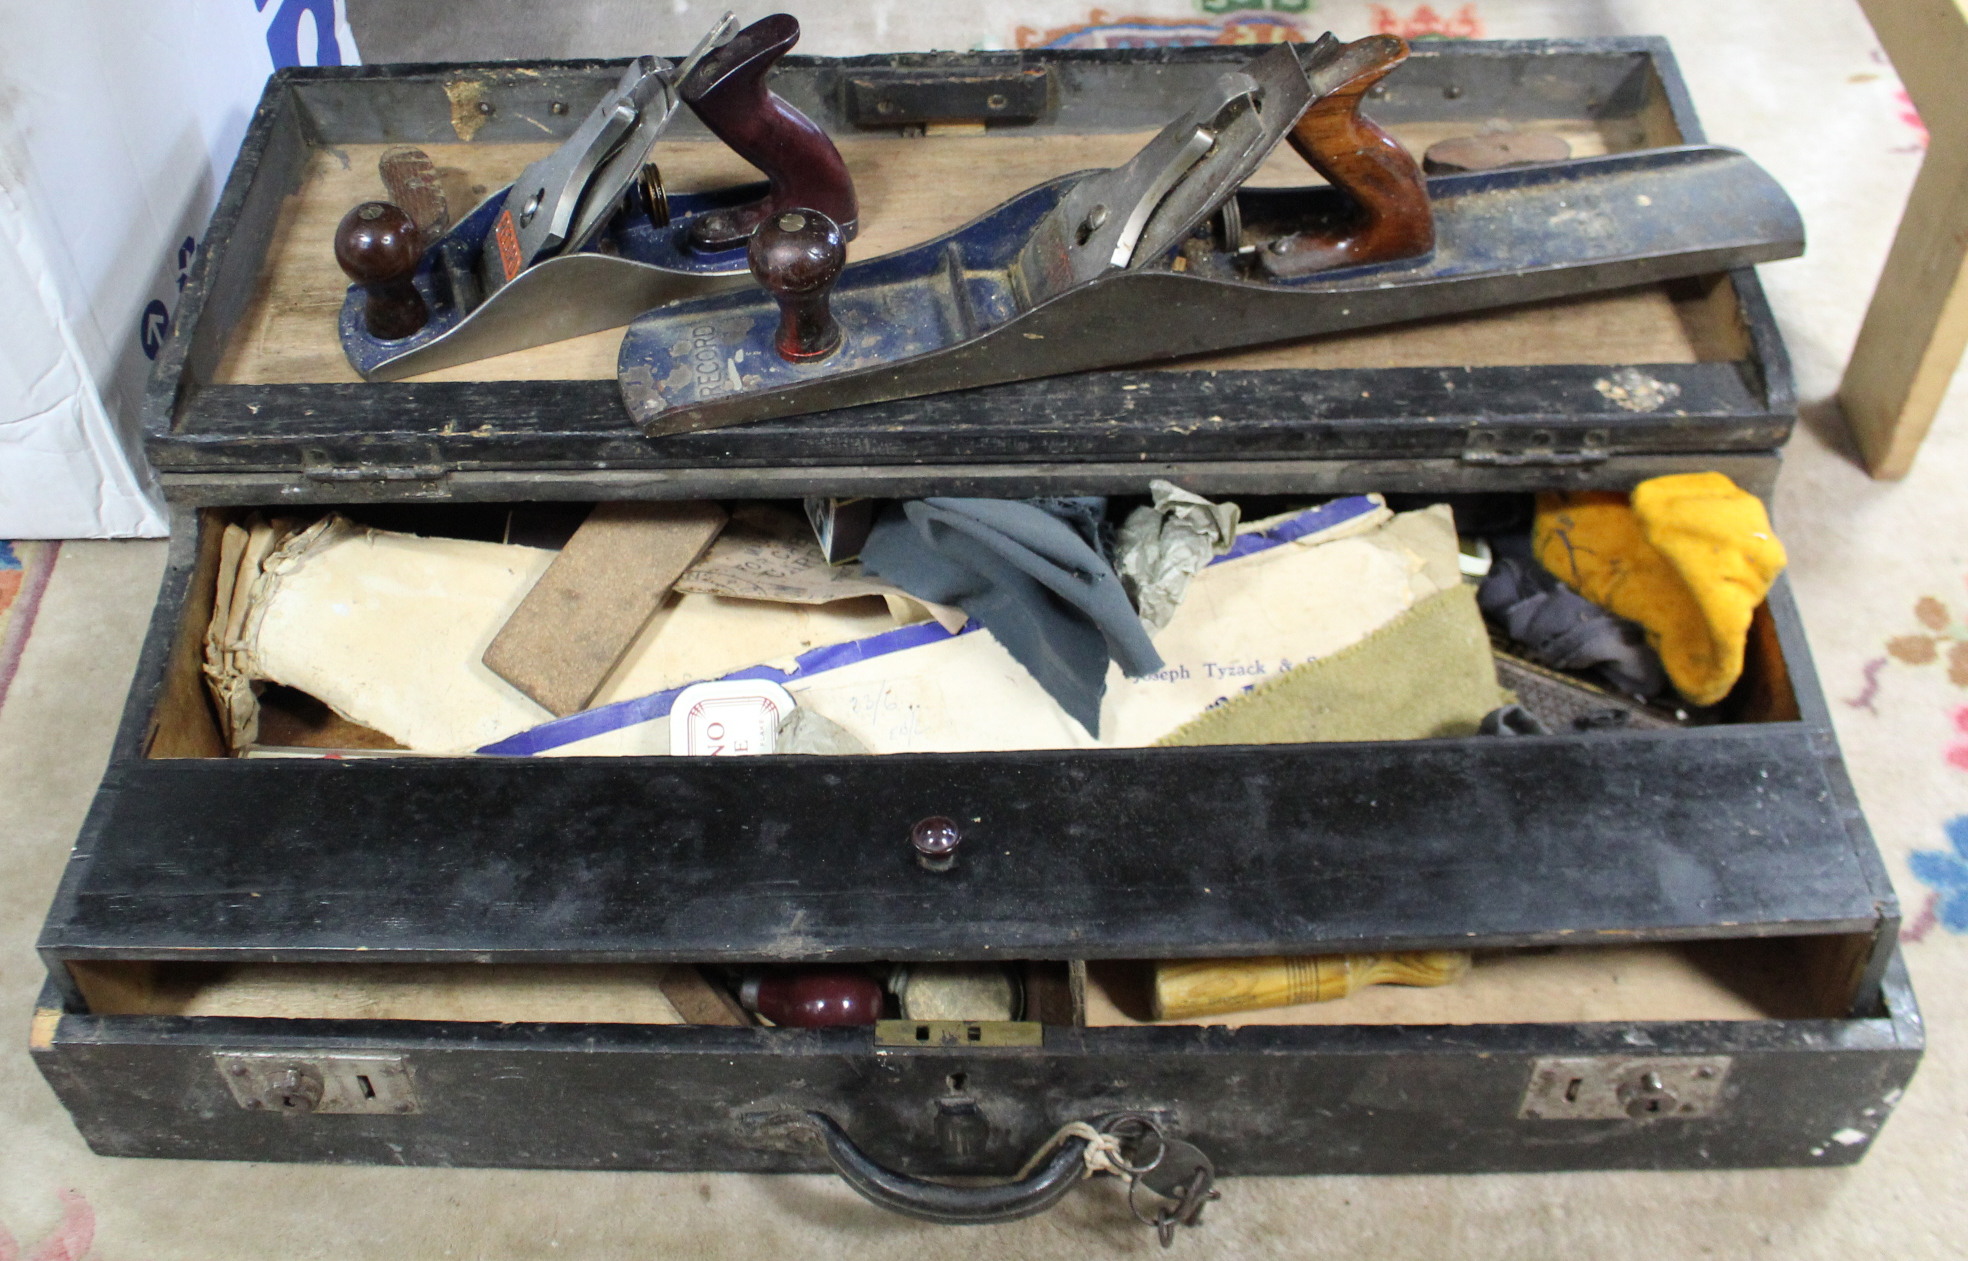 Lot 38 - Two Record smoothing planes (No. 4½ & No. 07); together with various other hand tools contained in a